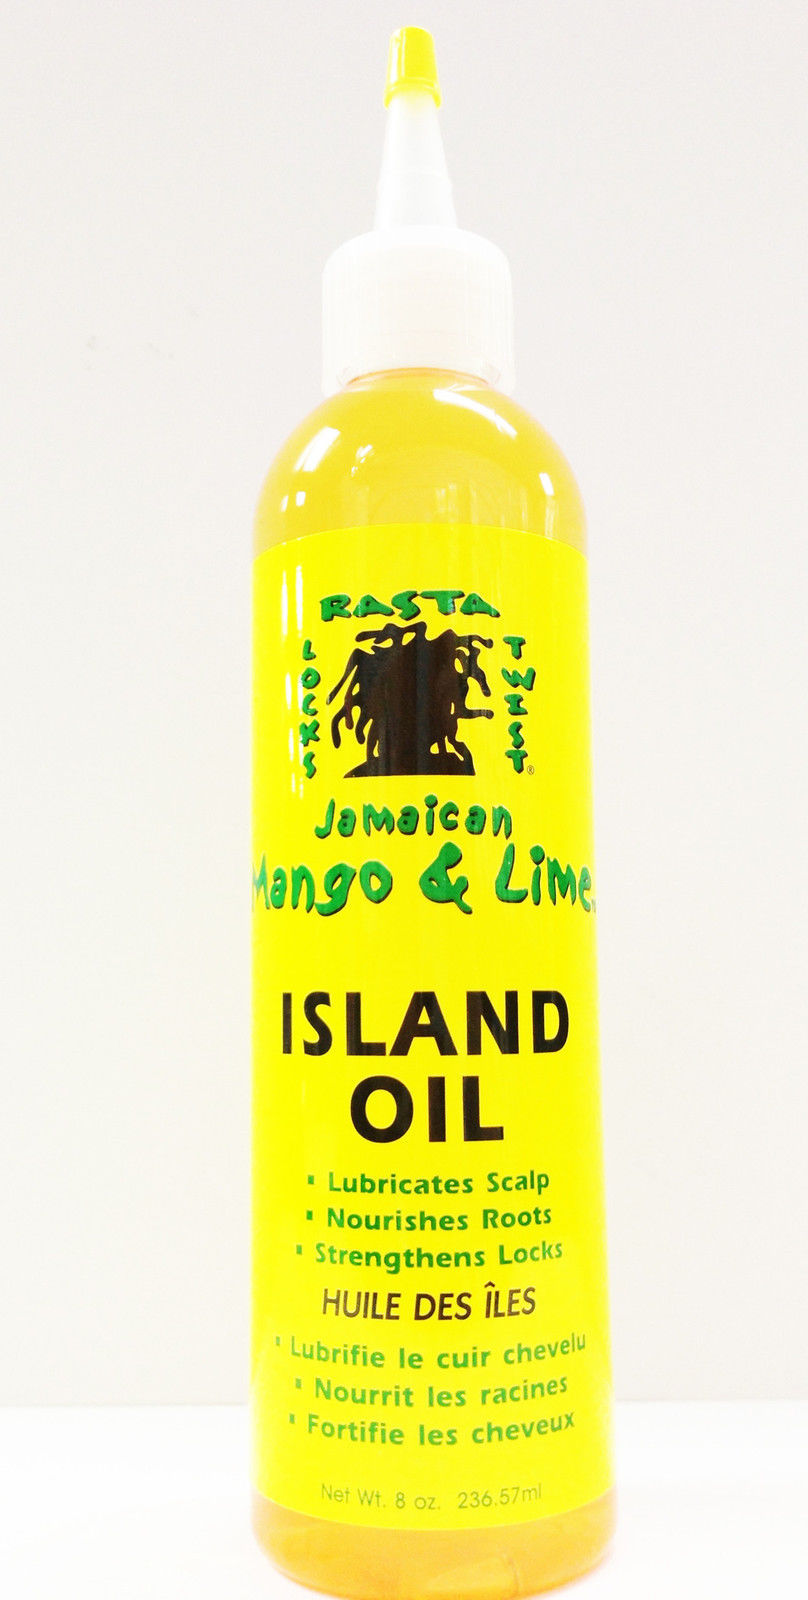 JAMAICAN MANGO & LIME ISLAND OIL LUBRICATES SCALP, NOURISHES ROOTS 8oz